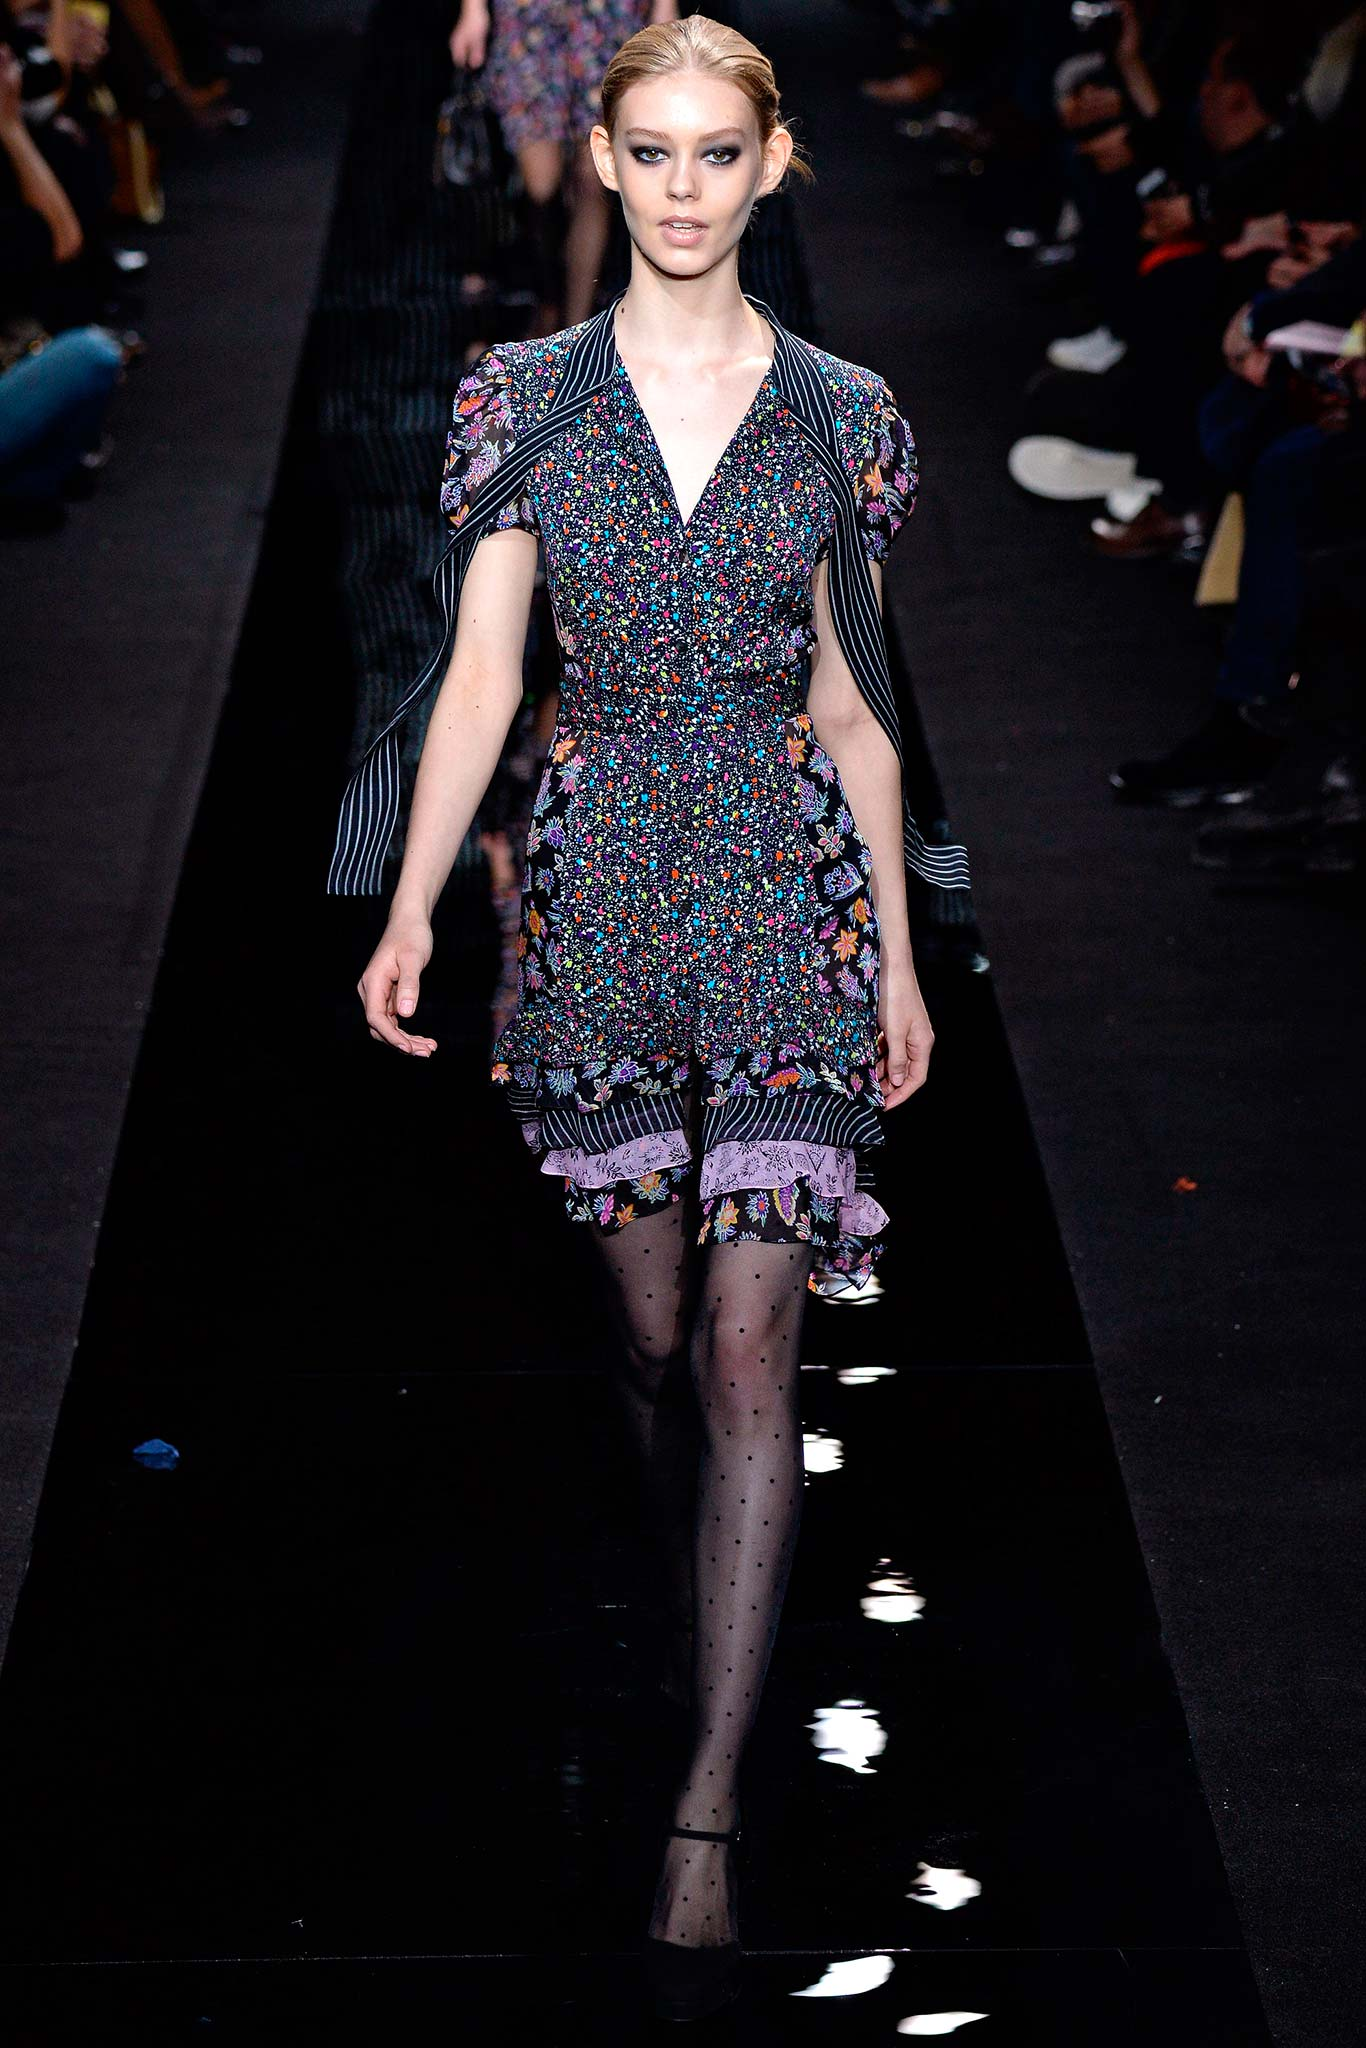 DVF Wrap Dress Fall 2015